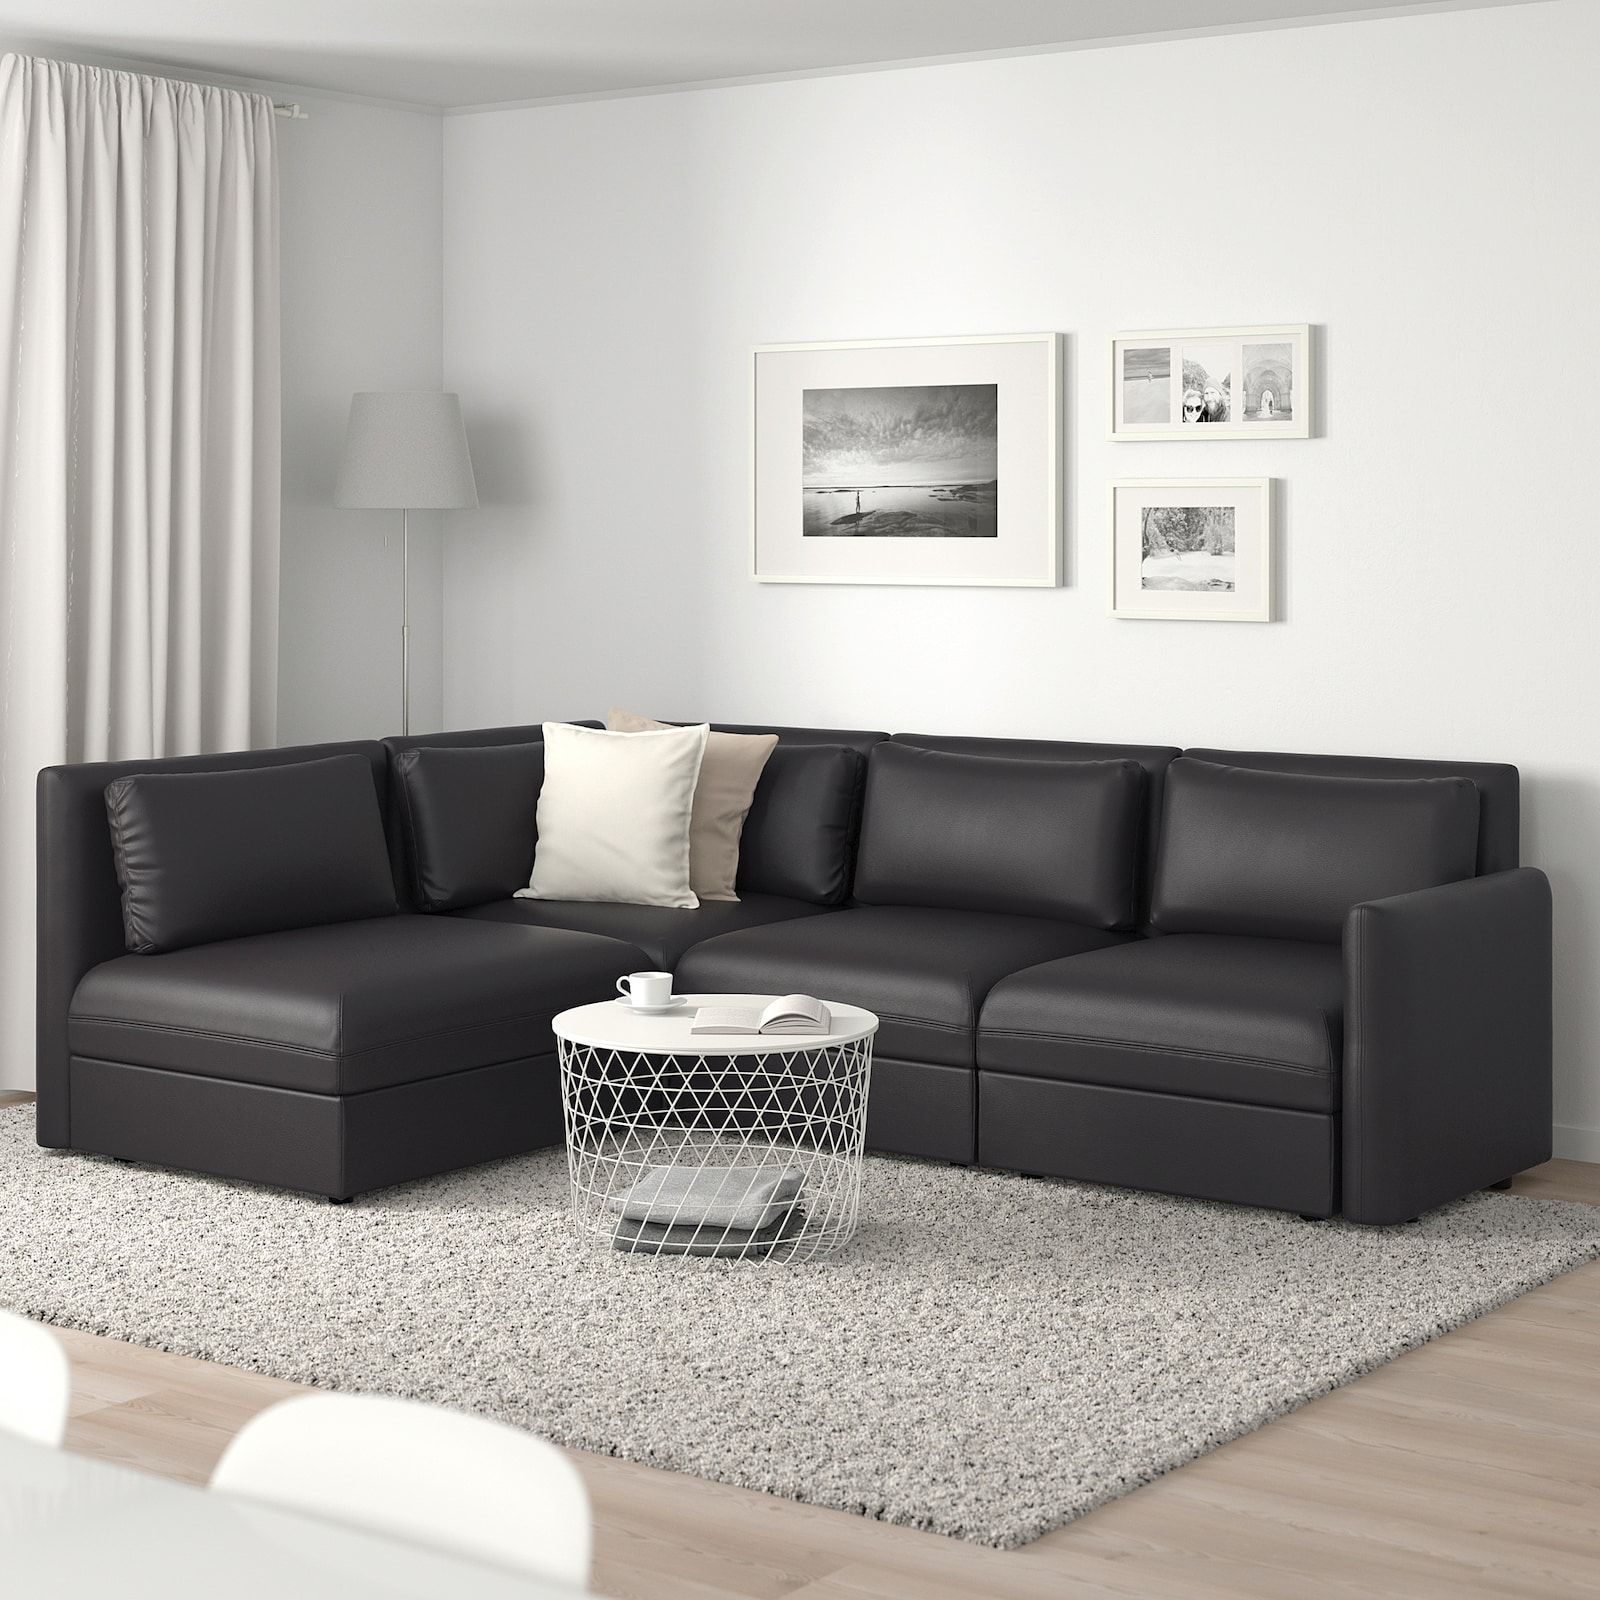 VALLENTUNA Modular corner sofa, 3seat, with storage/Black